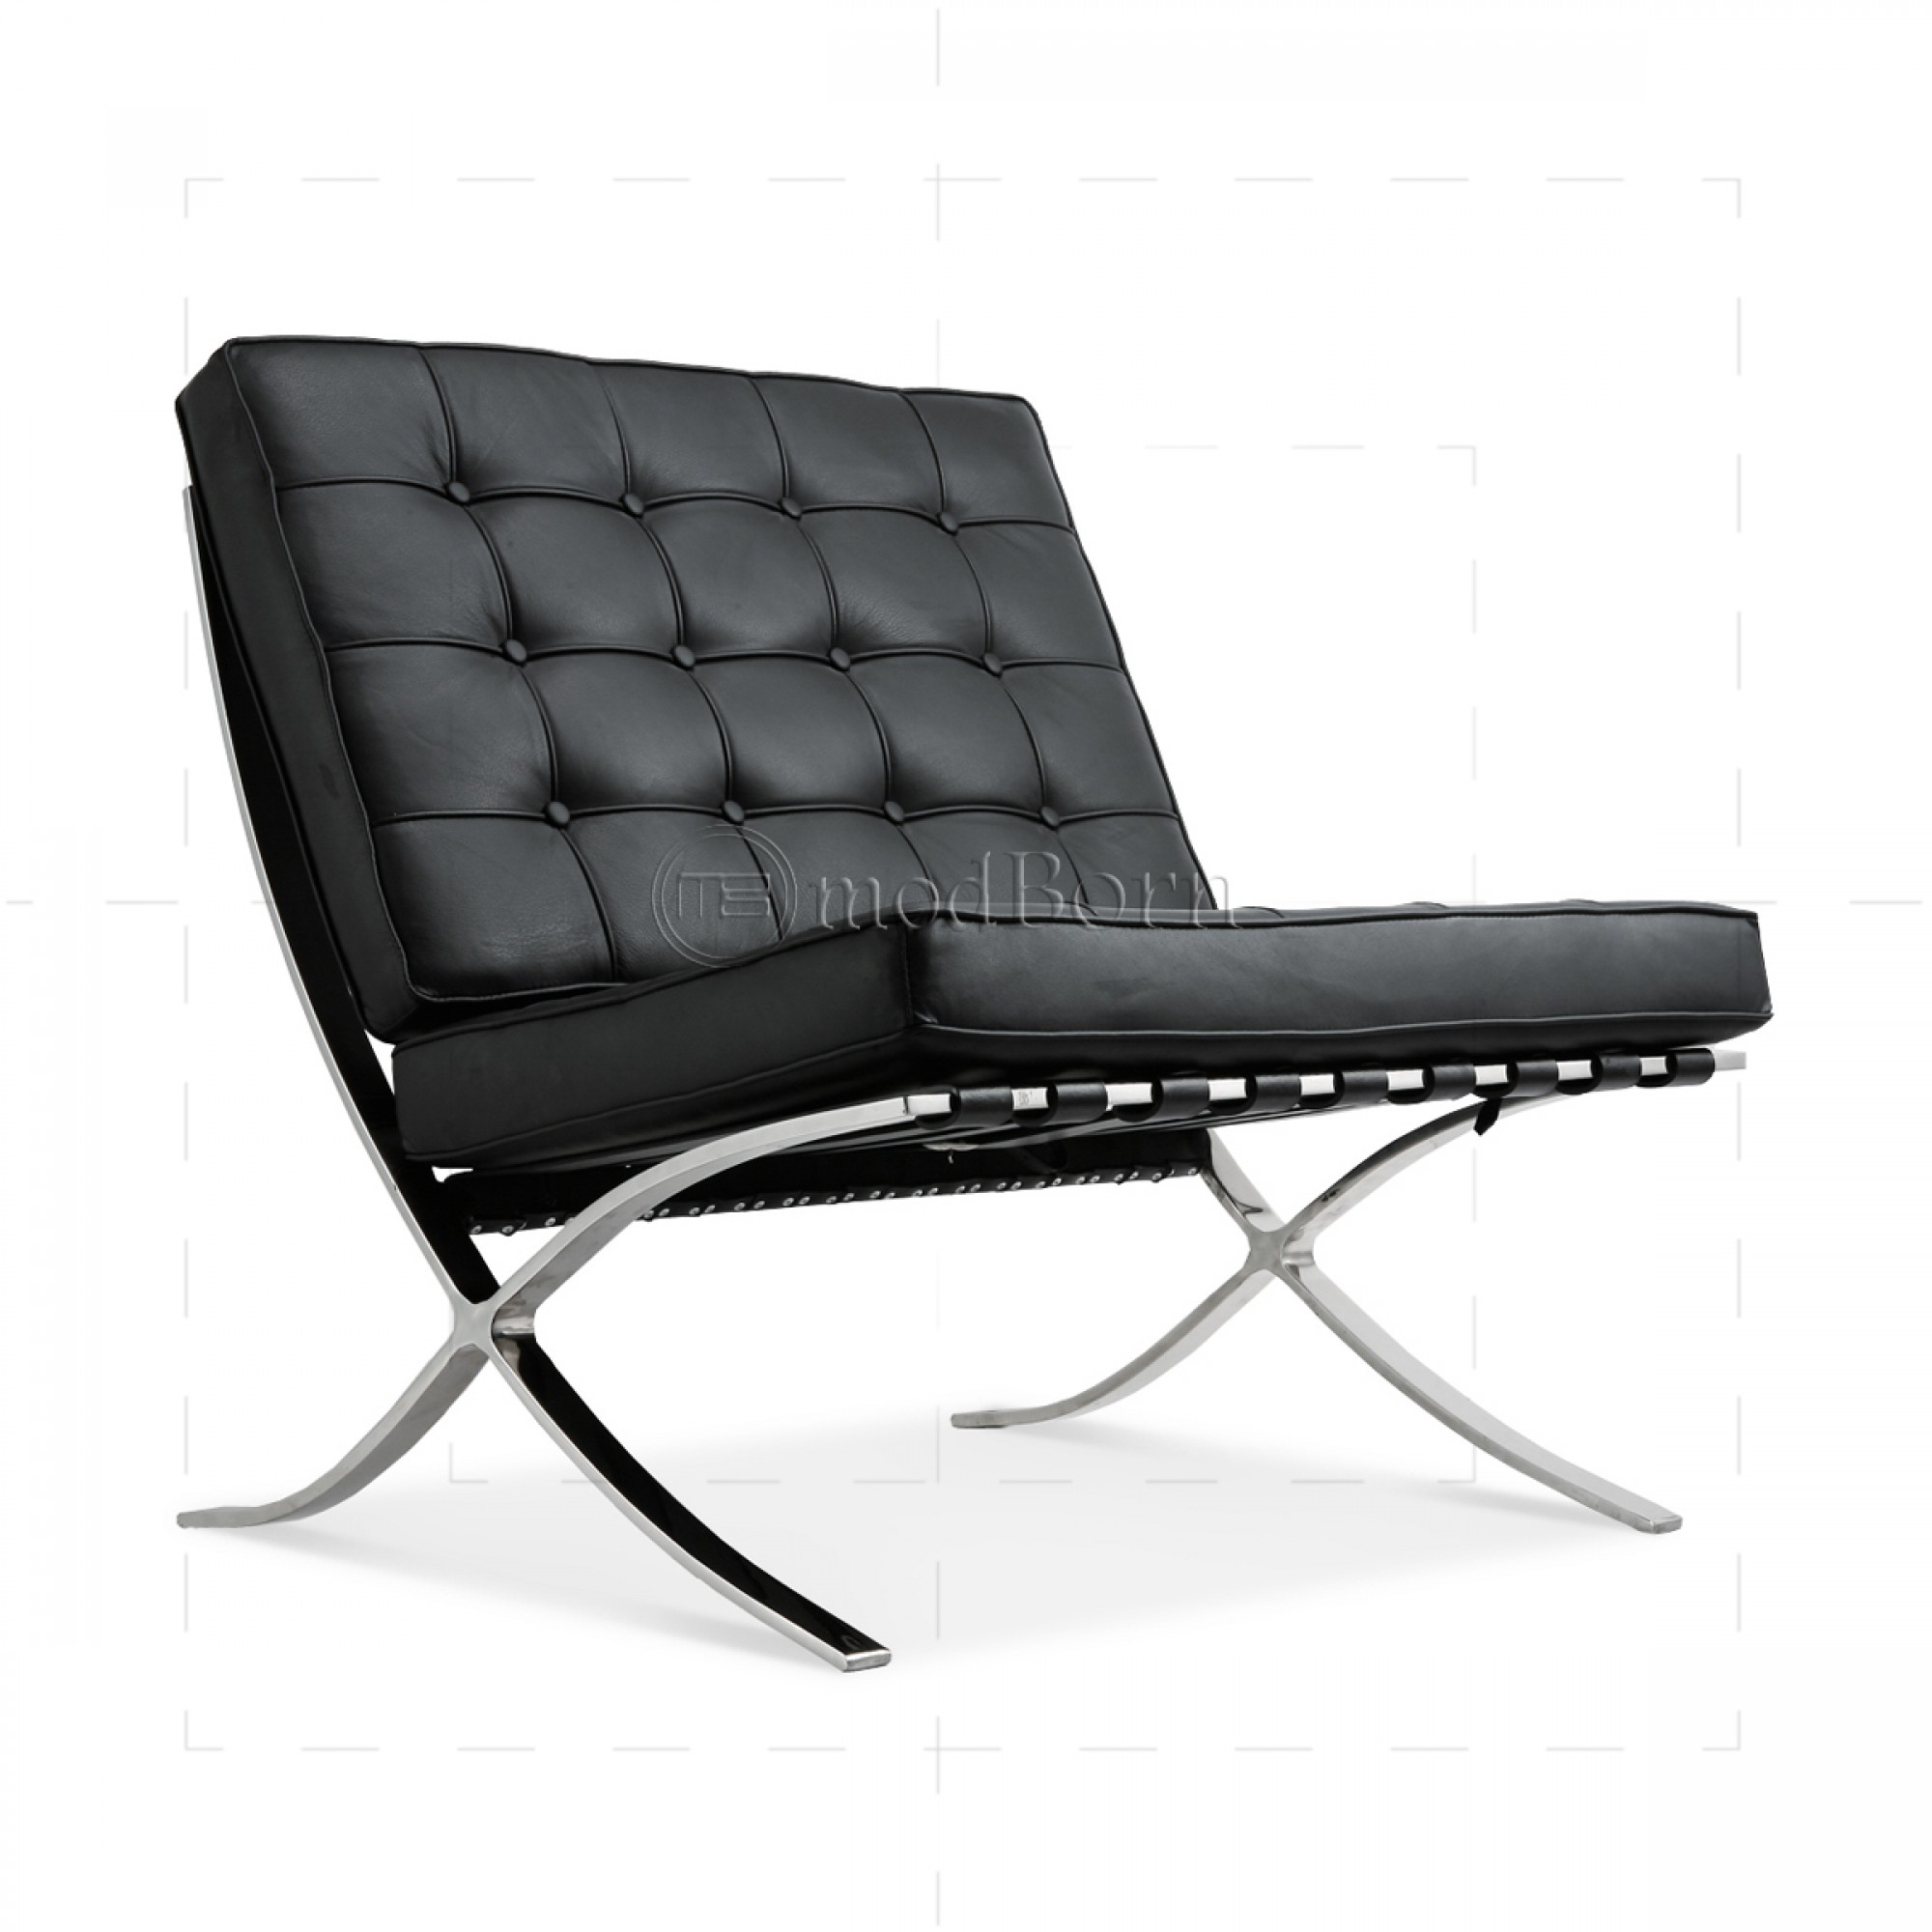 barcelona mies van der rohe chair barcelona chair by ludwig mies van der rohe 1929 designer. Black Bedroom Furniture Sets. Home Design Ideas